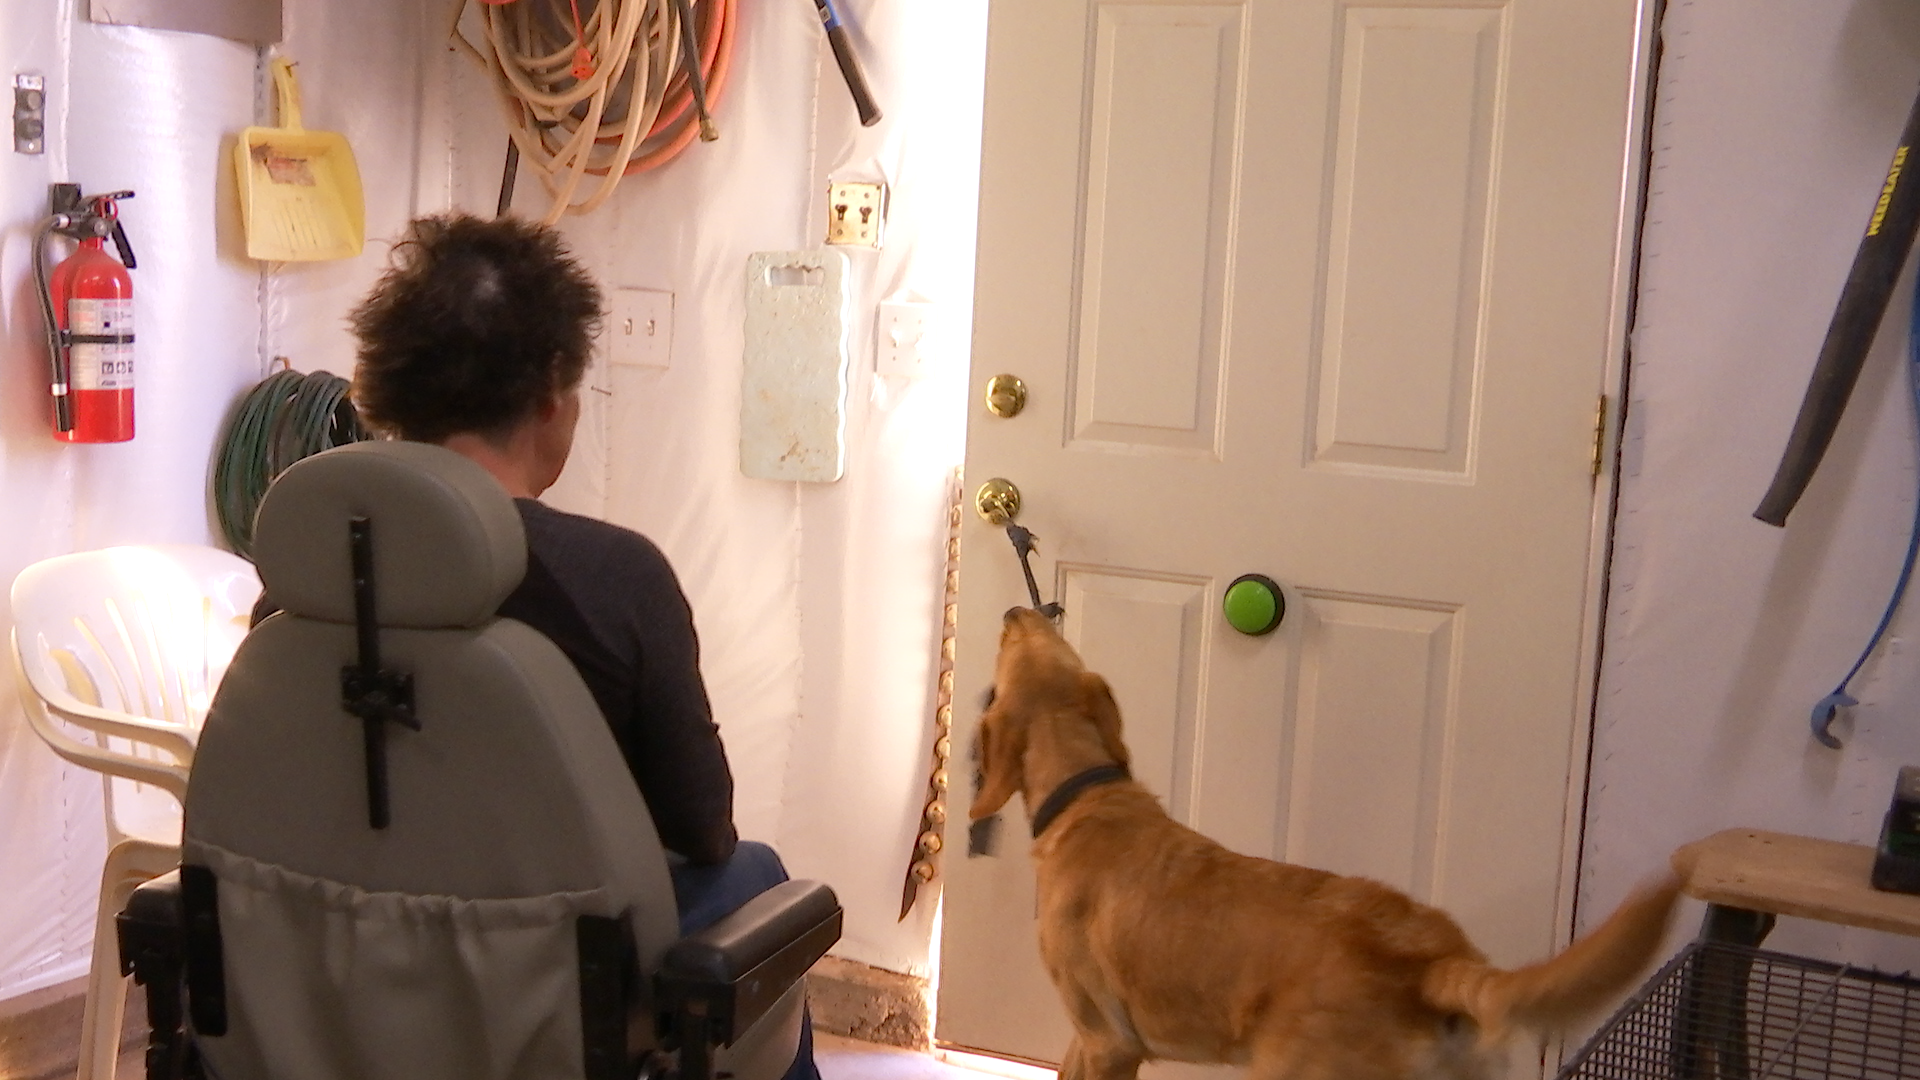 Cathy Powell instructs Katie the service dog to open the door, Loving Angel Service Dogs, St. George, Utah, Dec. 11, 2016 | Photo by Austin Peck, St. George News